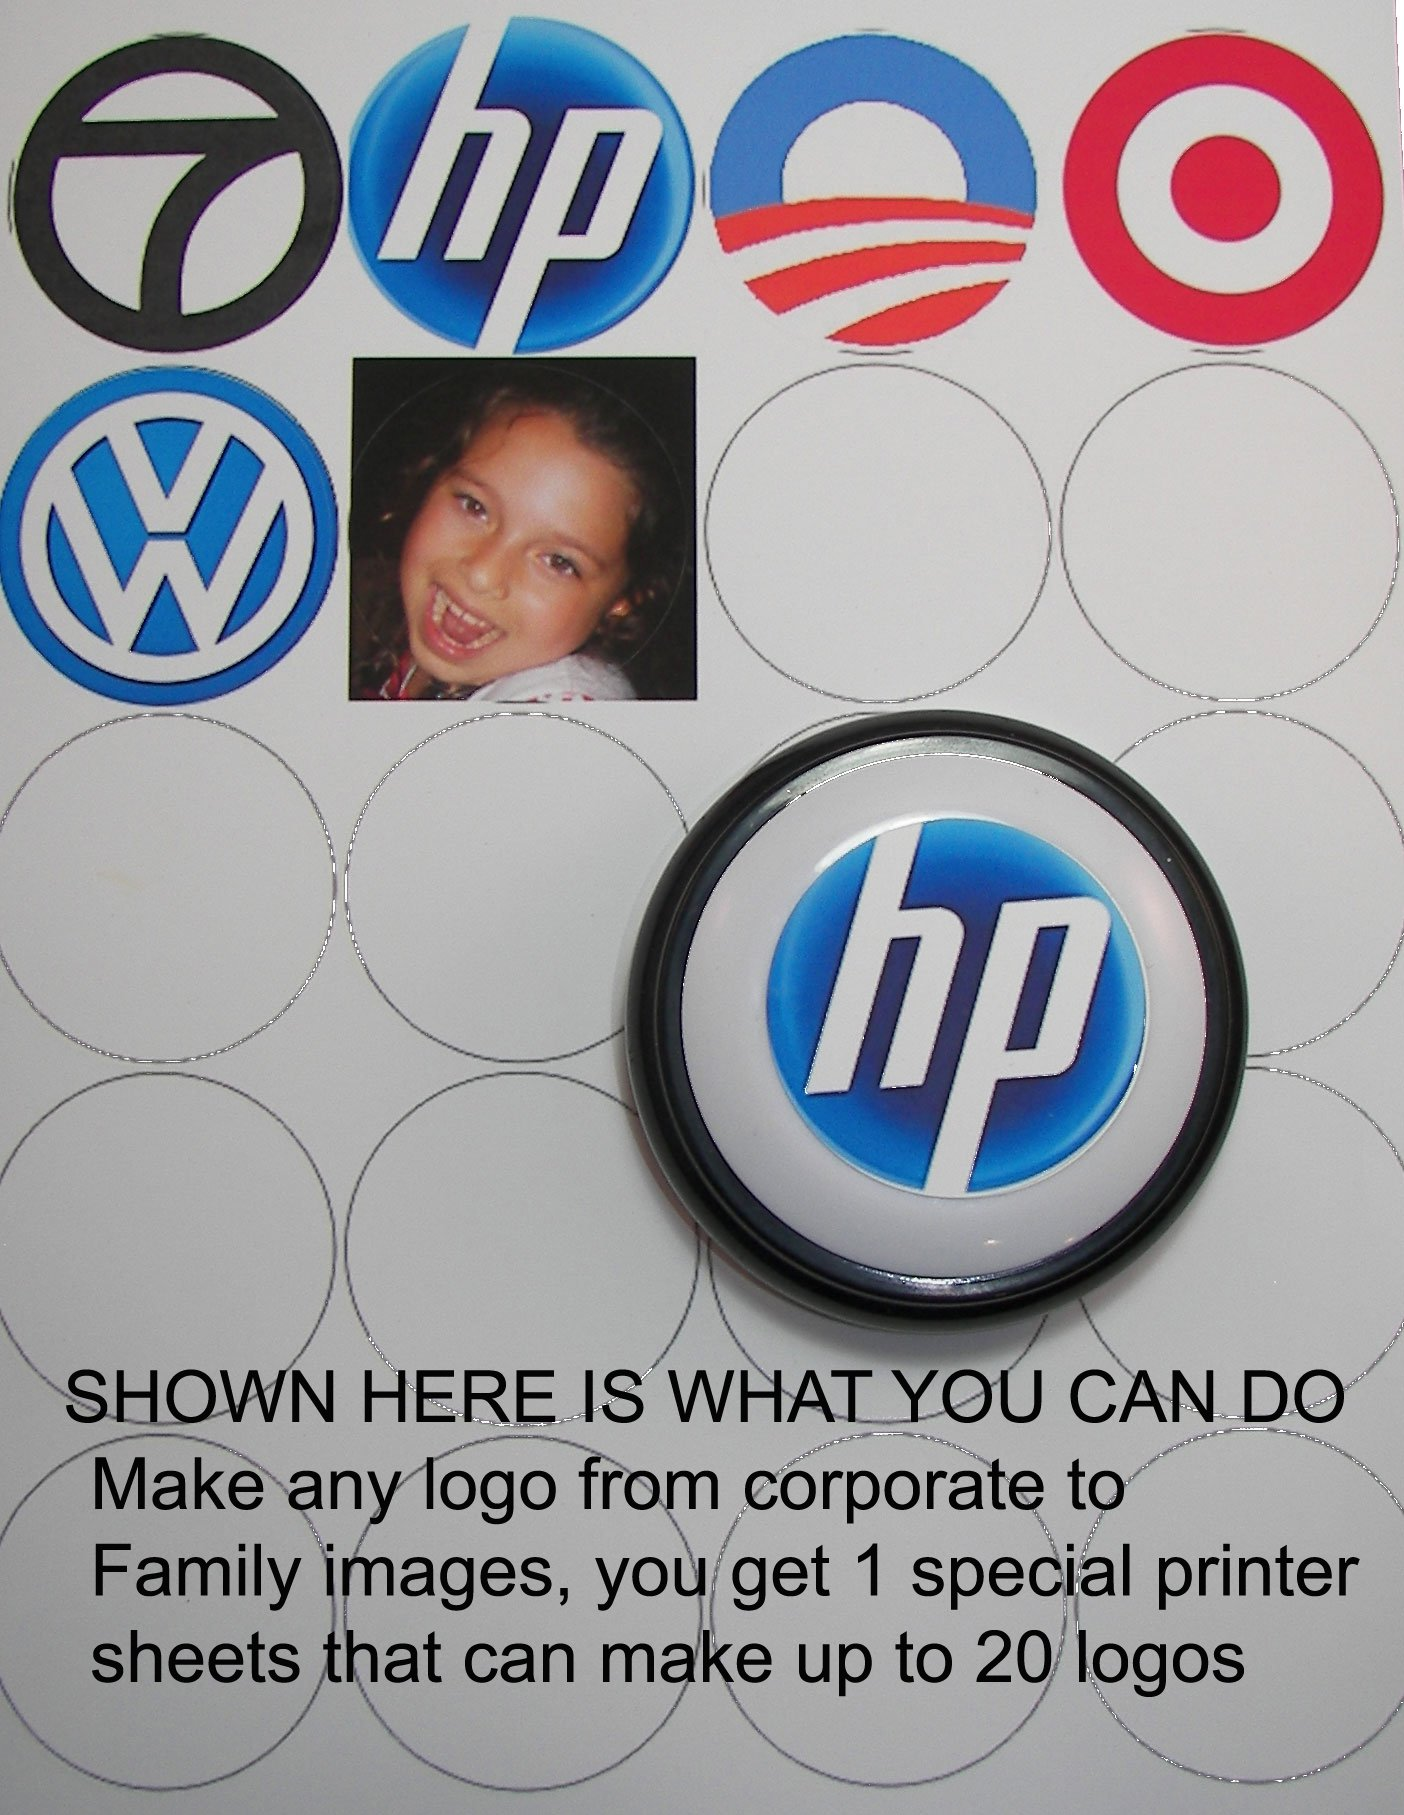 CUSTOM EASY BUTTON MAKER KIT - ADD YOUR LOGO AND 10 SECONDS OF SOUND